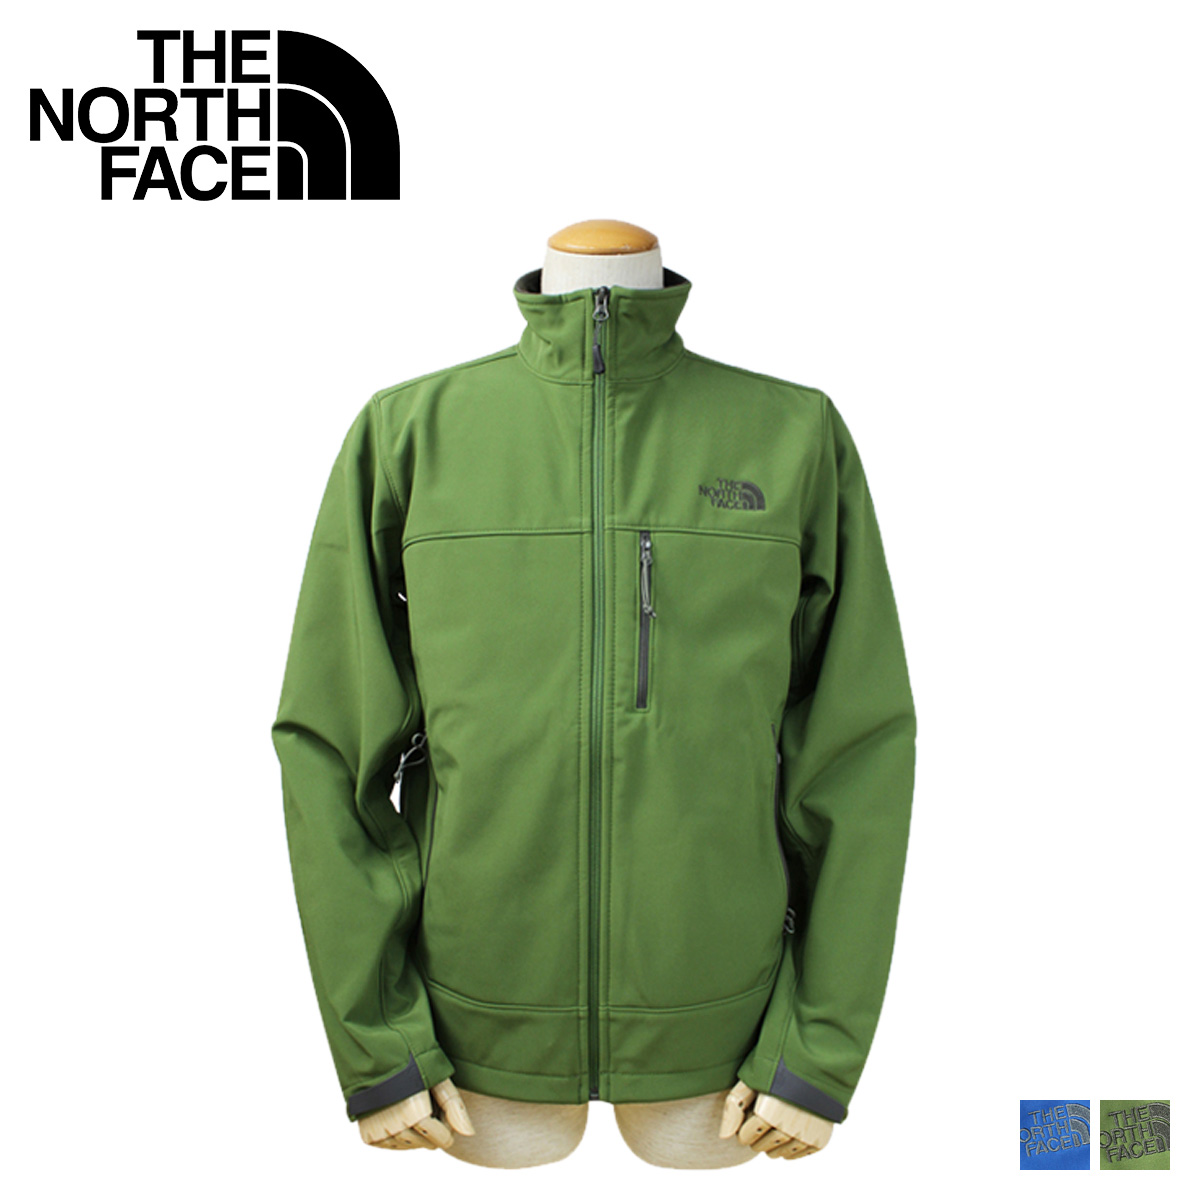 c0dc66bc8 ALLSPORTS: Point 2 times the north face THE NORTH FACE jacket nylon ...